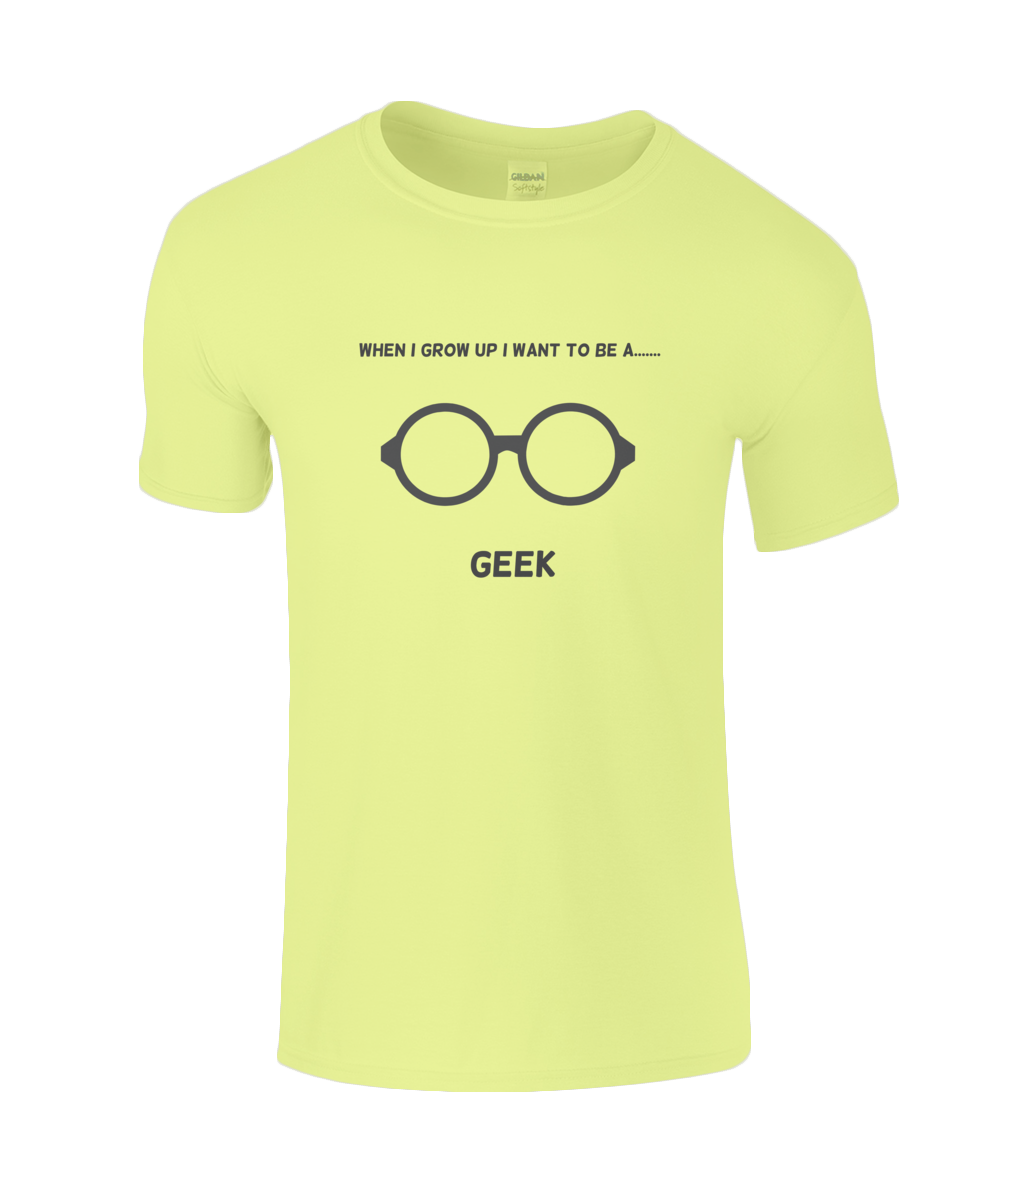 When I Grow Up I Want To Be A Geek - youth's t-shirt